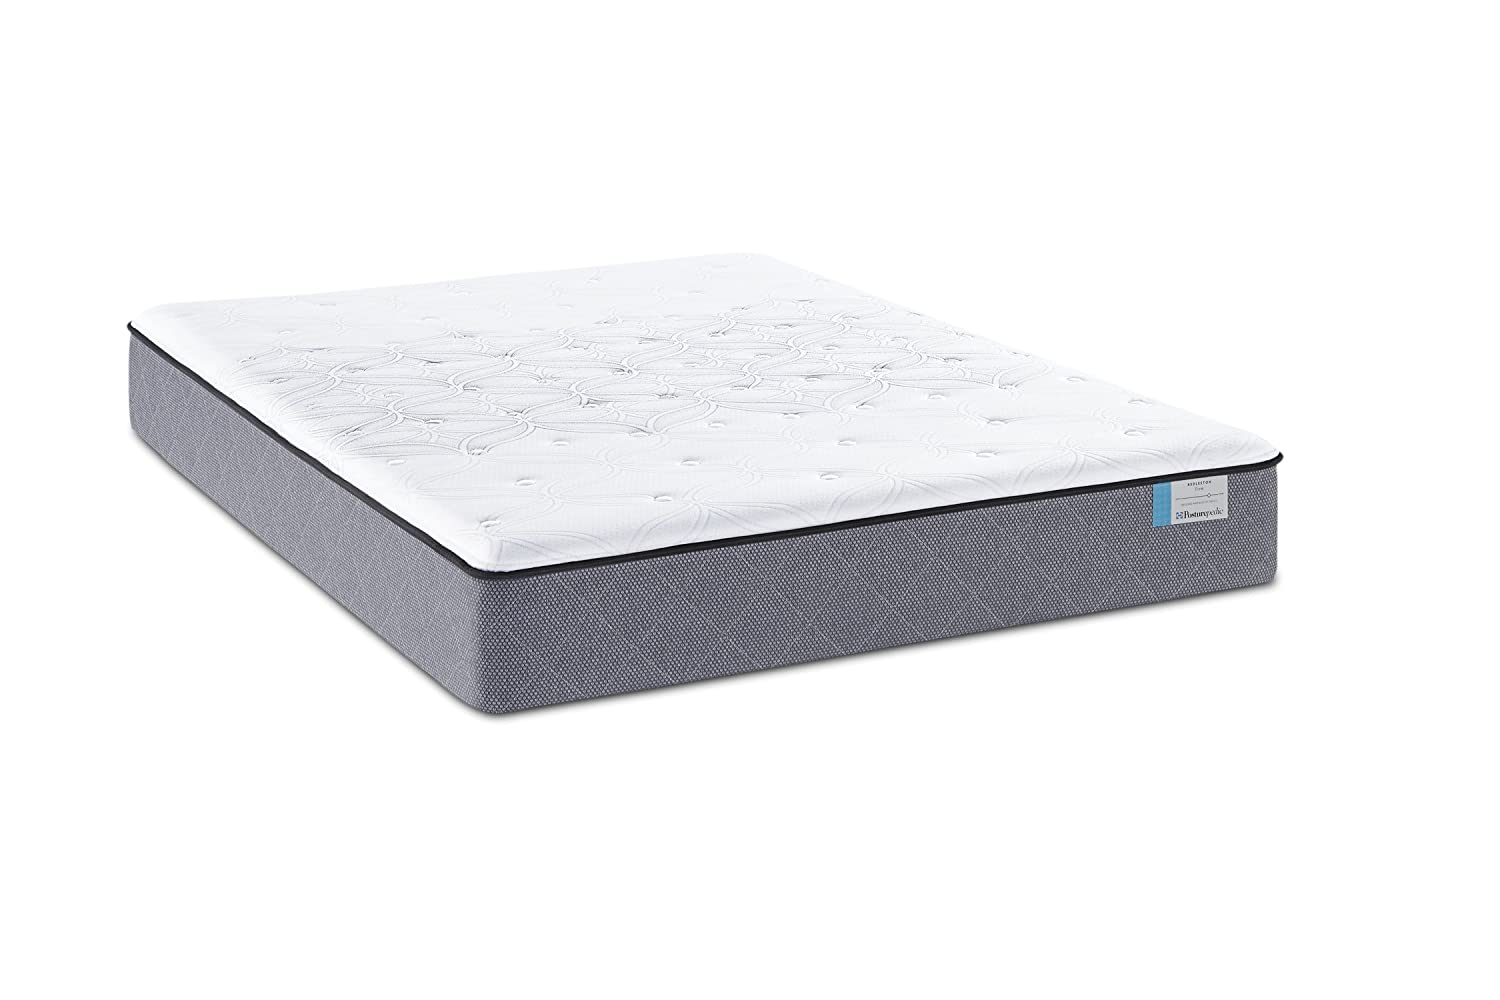 Amazon.com: Sealy Posturepedic Drakesboro Plush Tight Top Mattress, Full: Kitchen & Dining